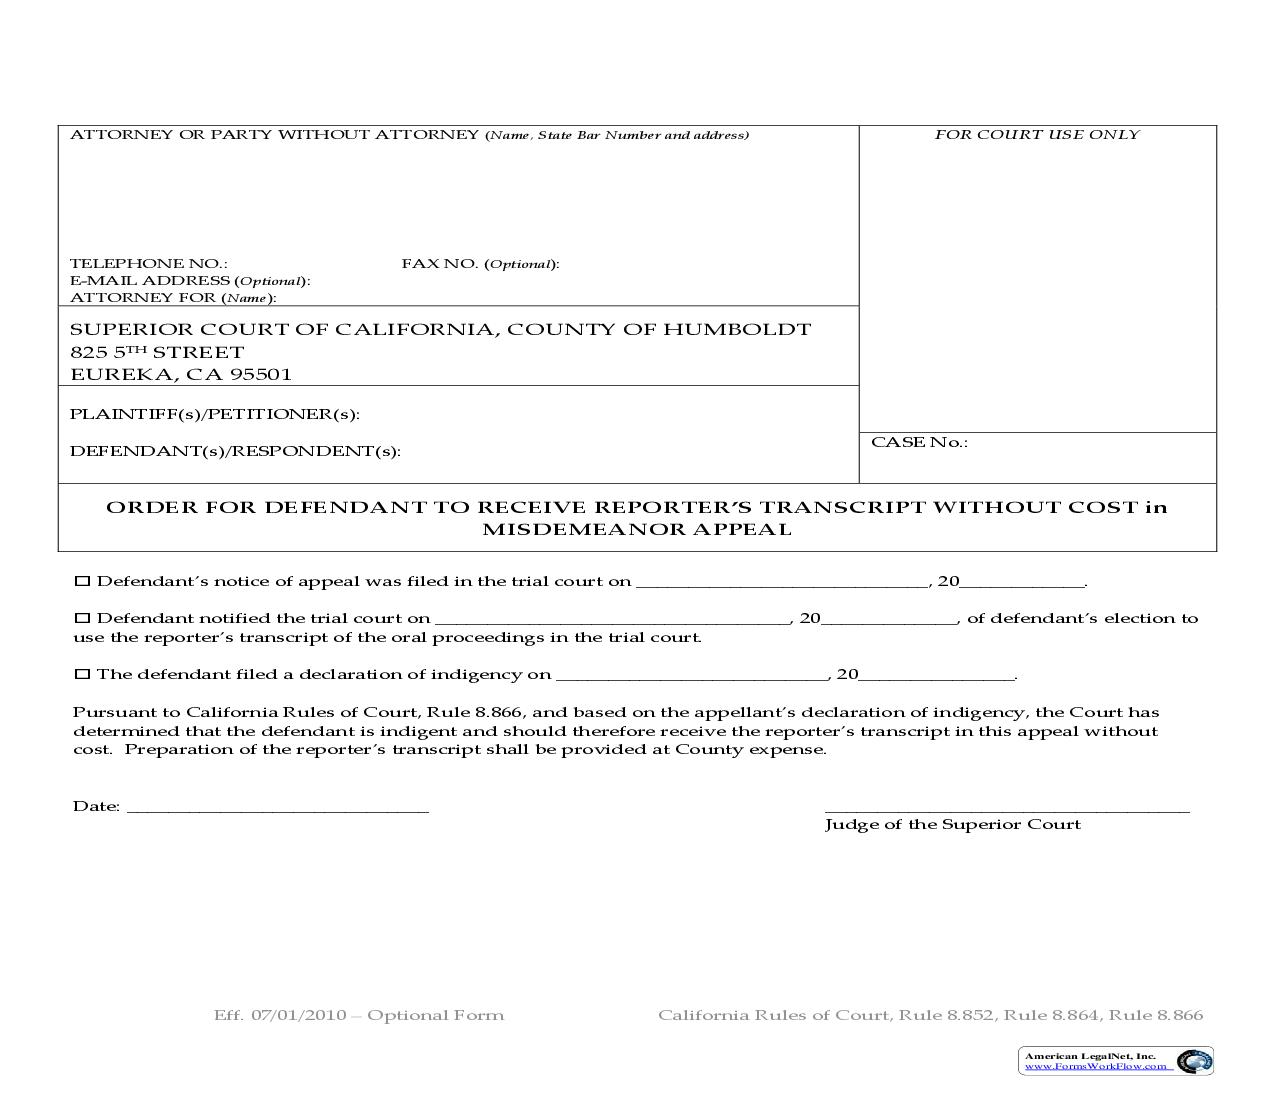 Order For Defendant To Receive Reporters Transcript Without Cost In Misdemeanor Appeal | Pdf Fpdf Doc Docx | California